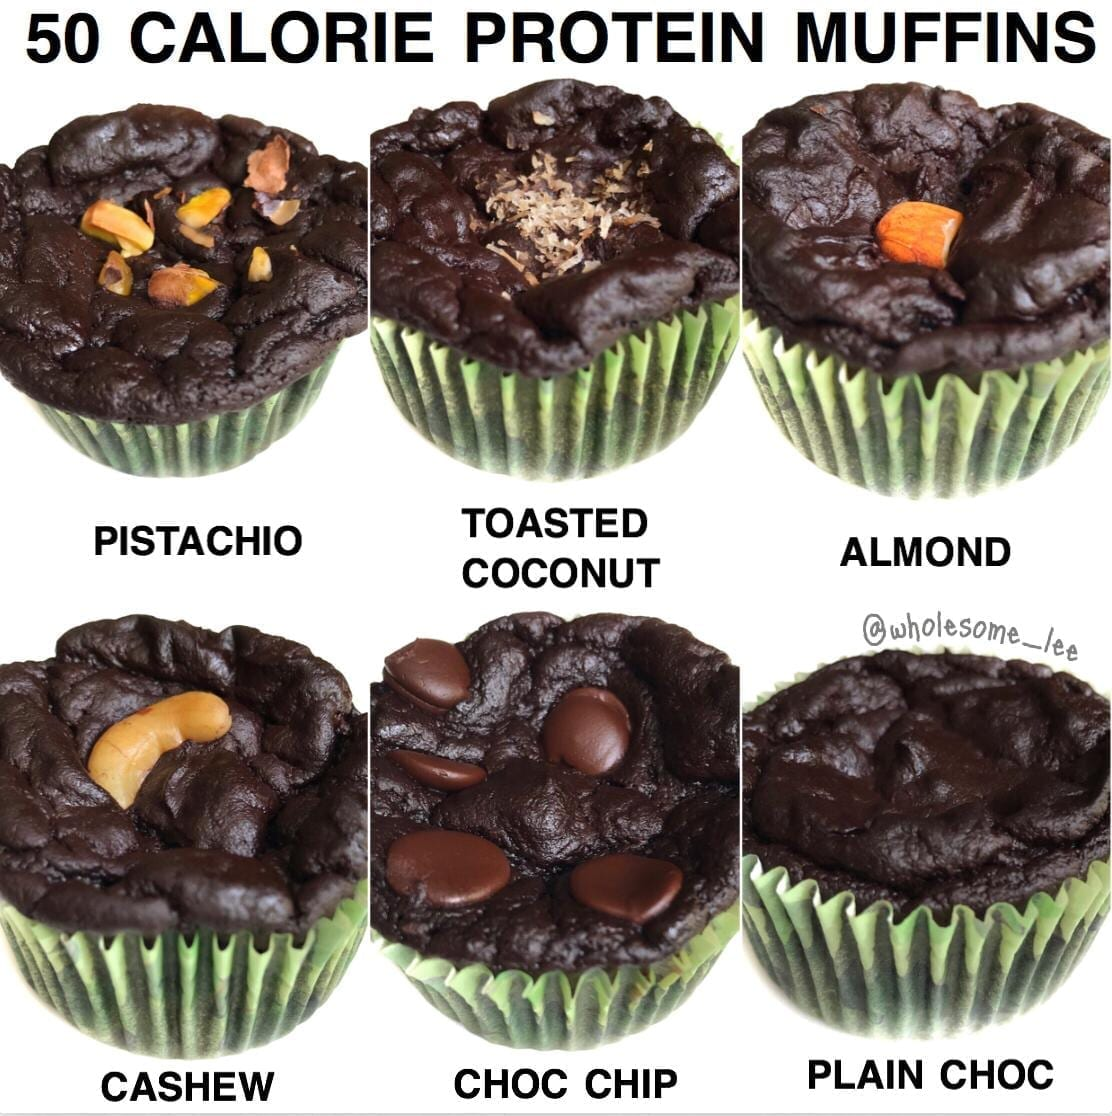 50 Calorie Protein Muffins